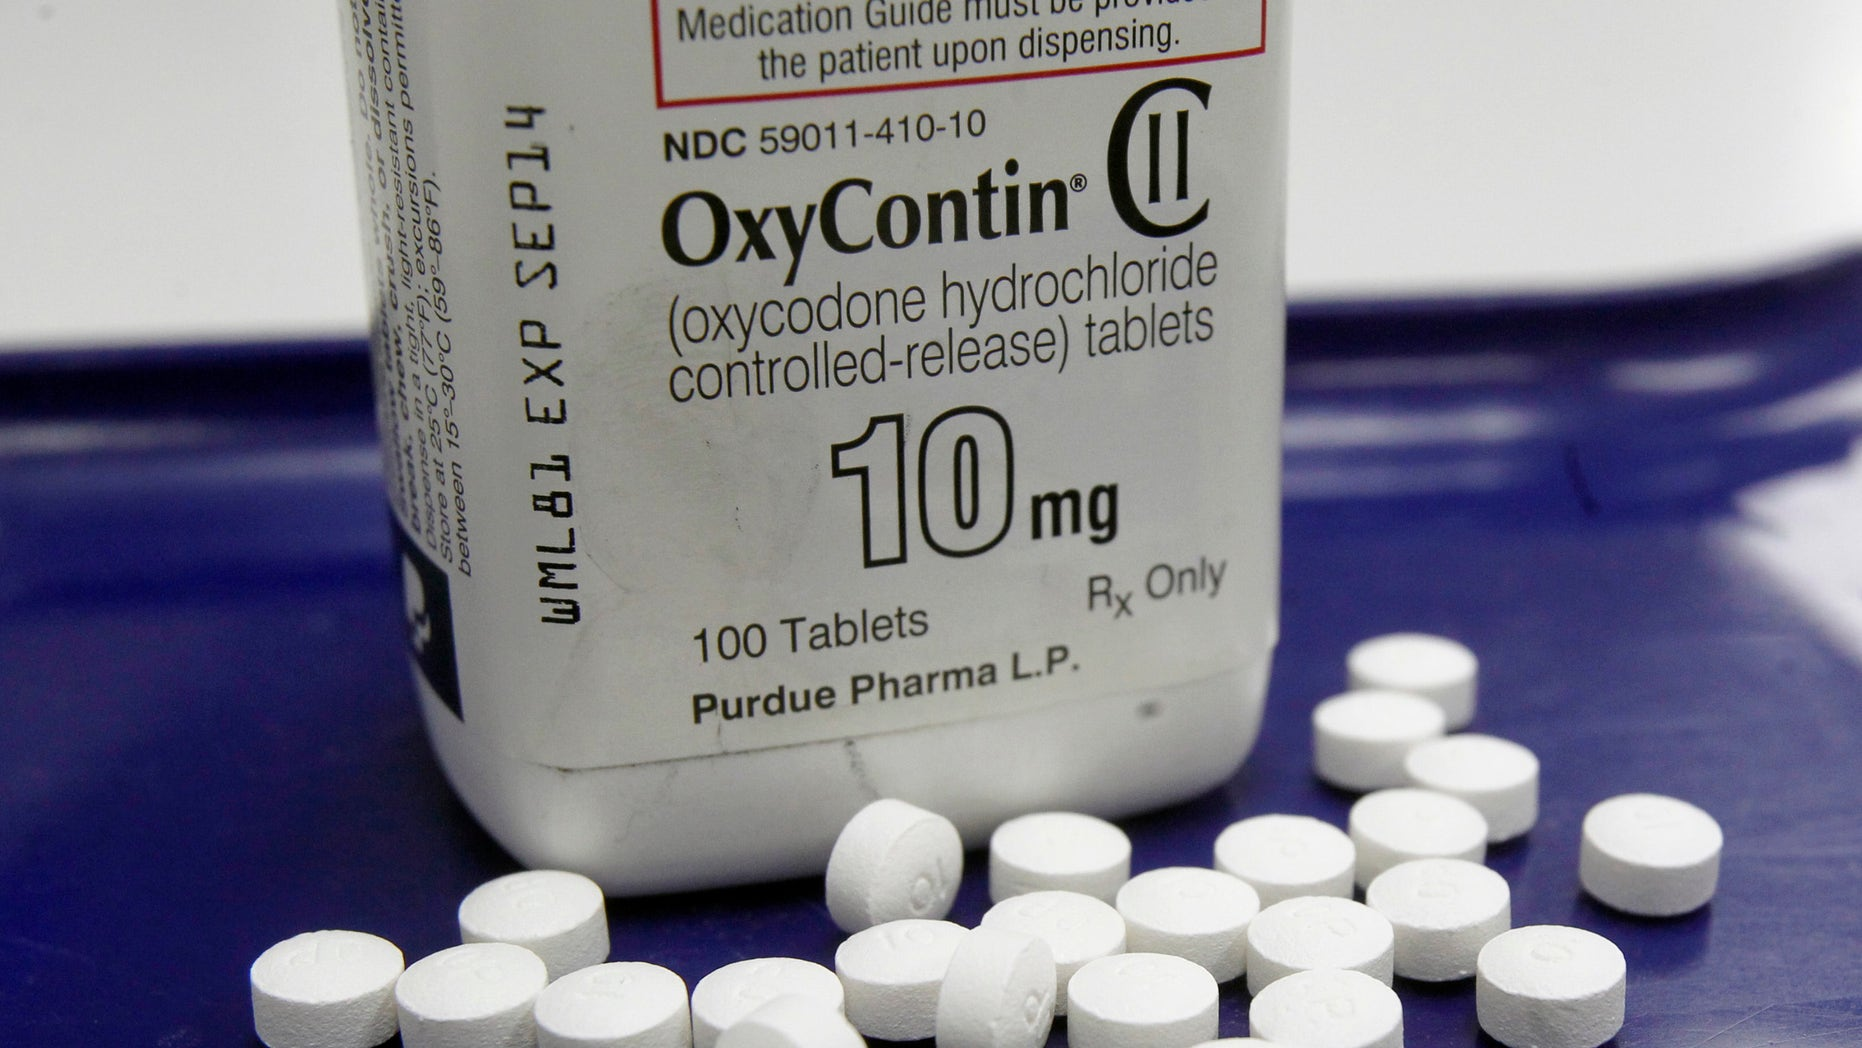 Feb. 19, 2013 – FILE photo of OxyContin pills at a pharmacy in Montpelier, Vt. (AP)